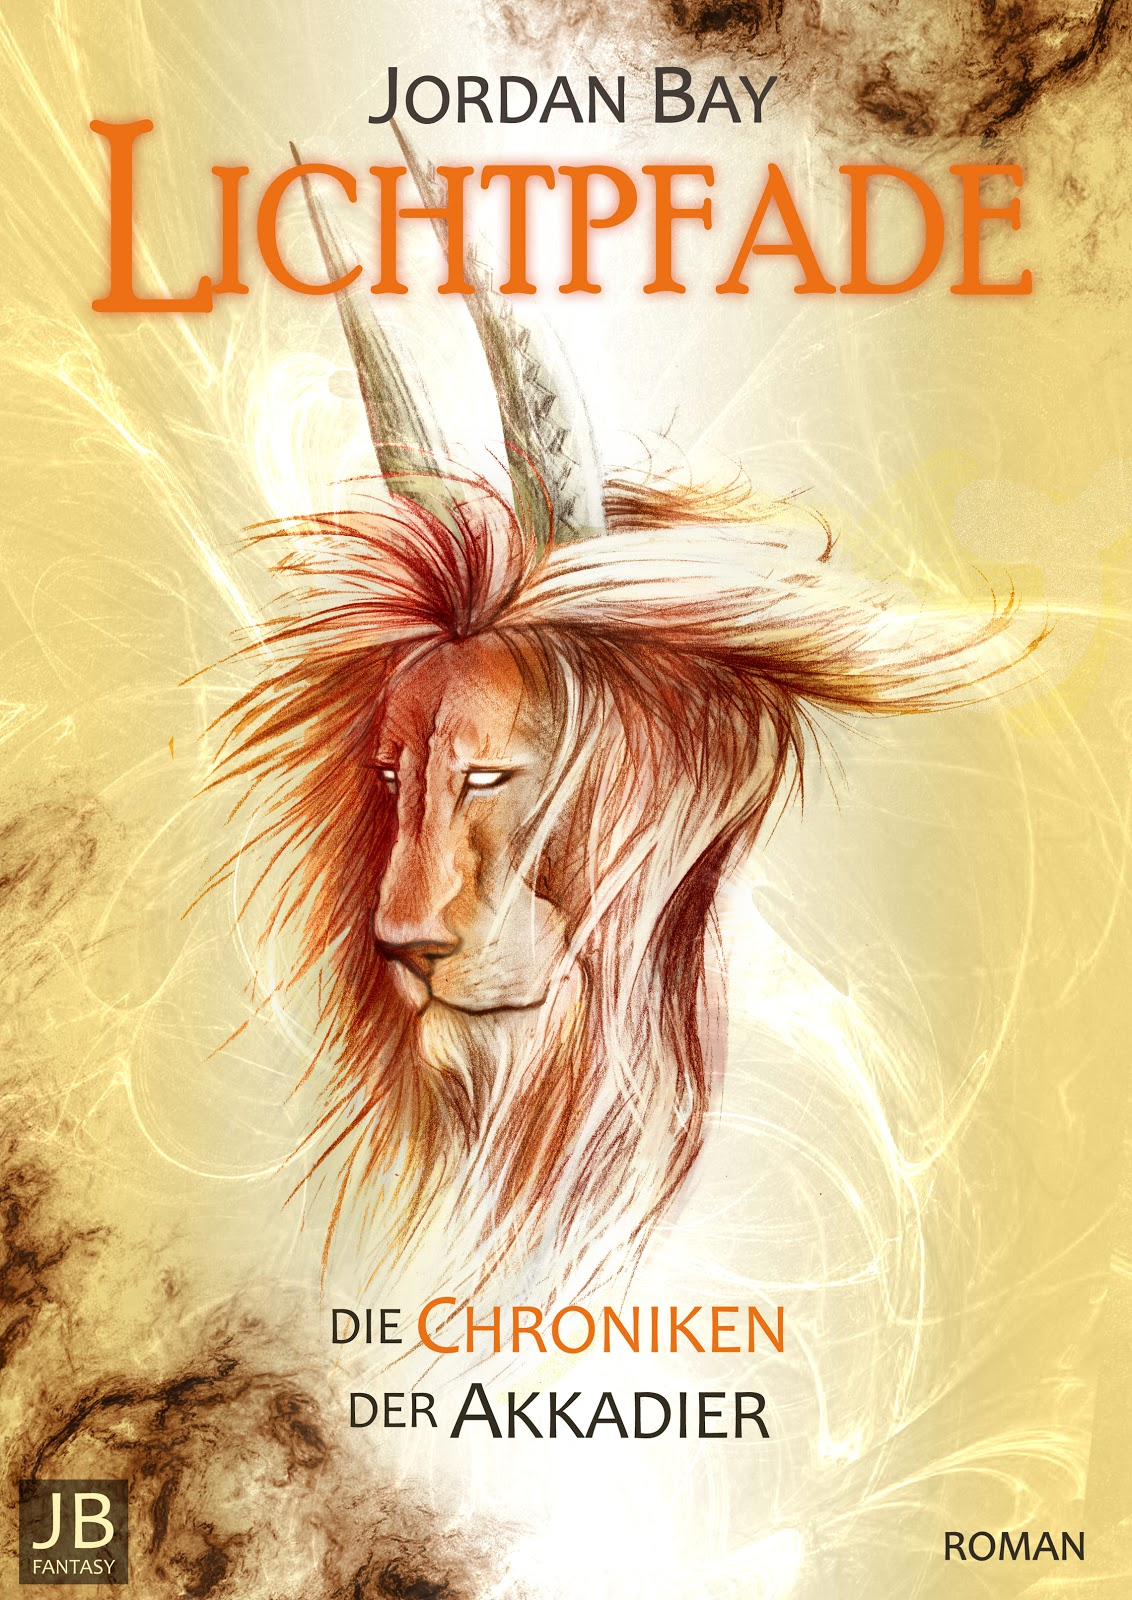 http://fantasybooks-shadowtouch.blogspot.co.at/2015/07/jordan-bay-lichtpfade-die-chroniken-der.html